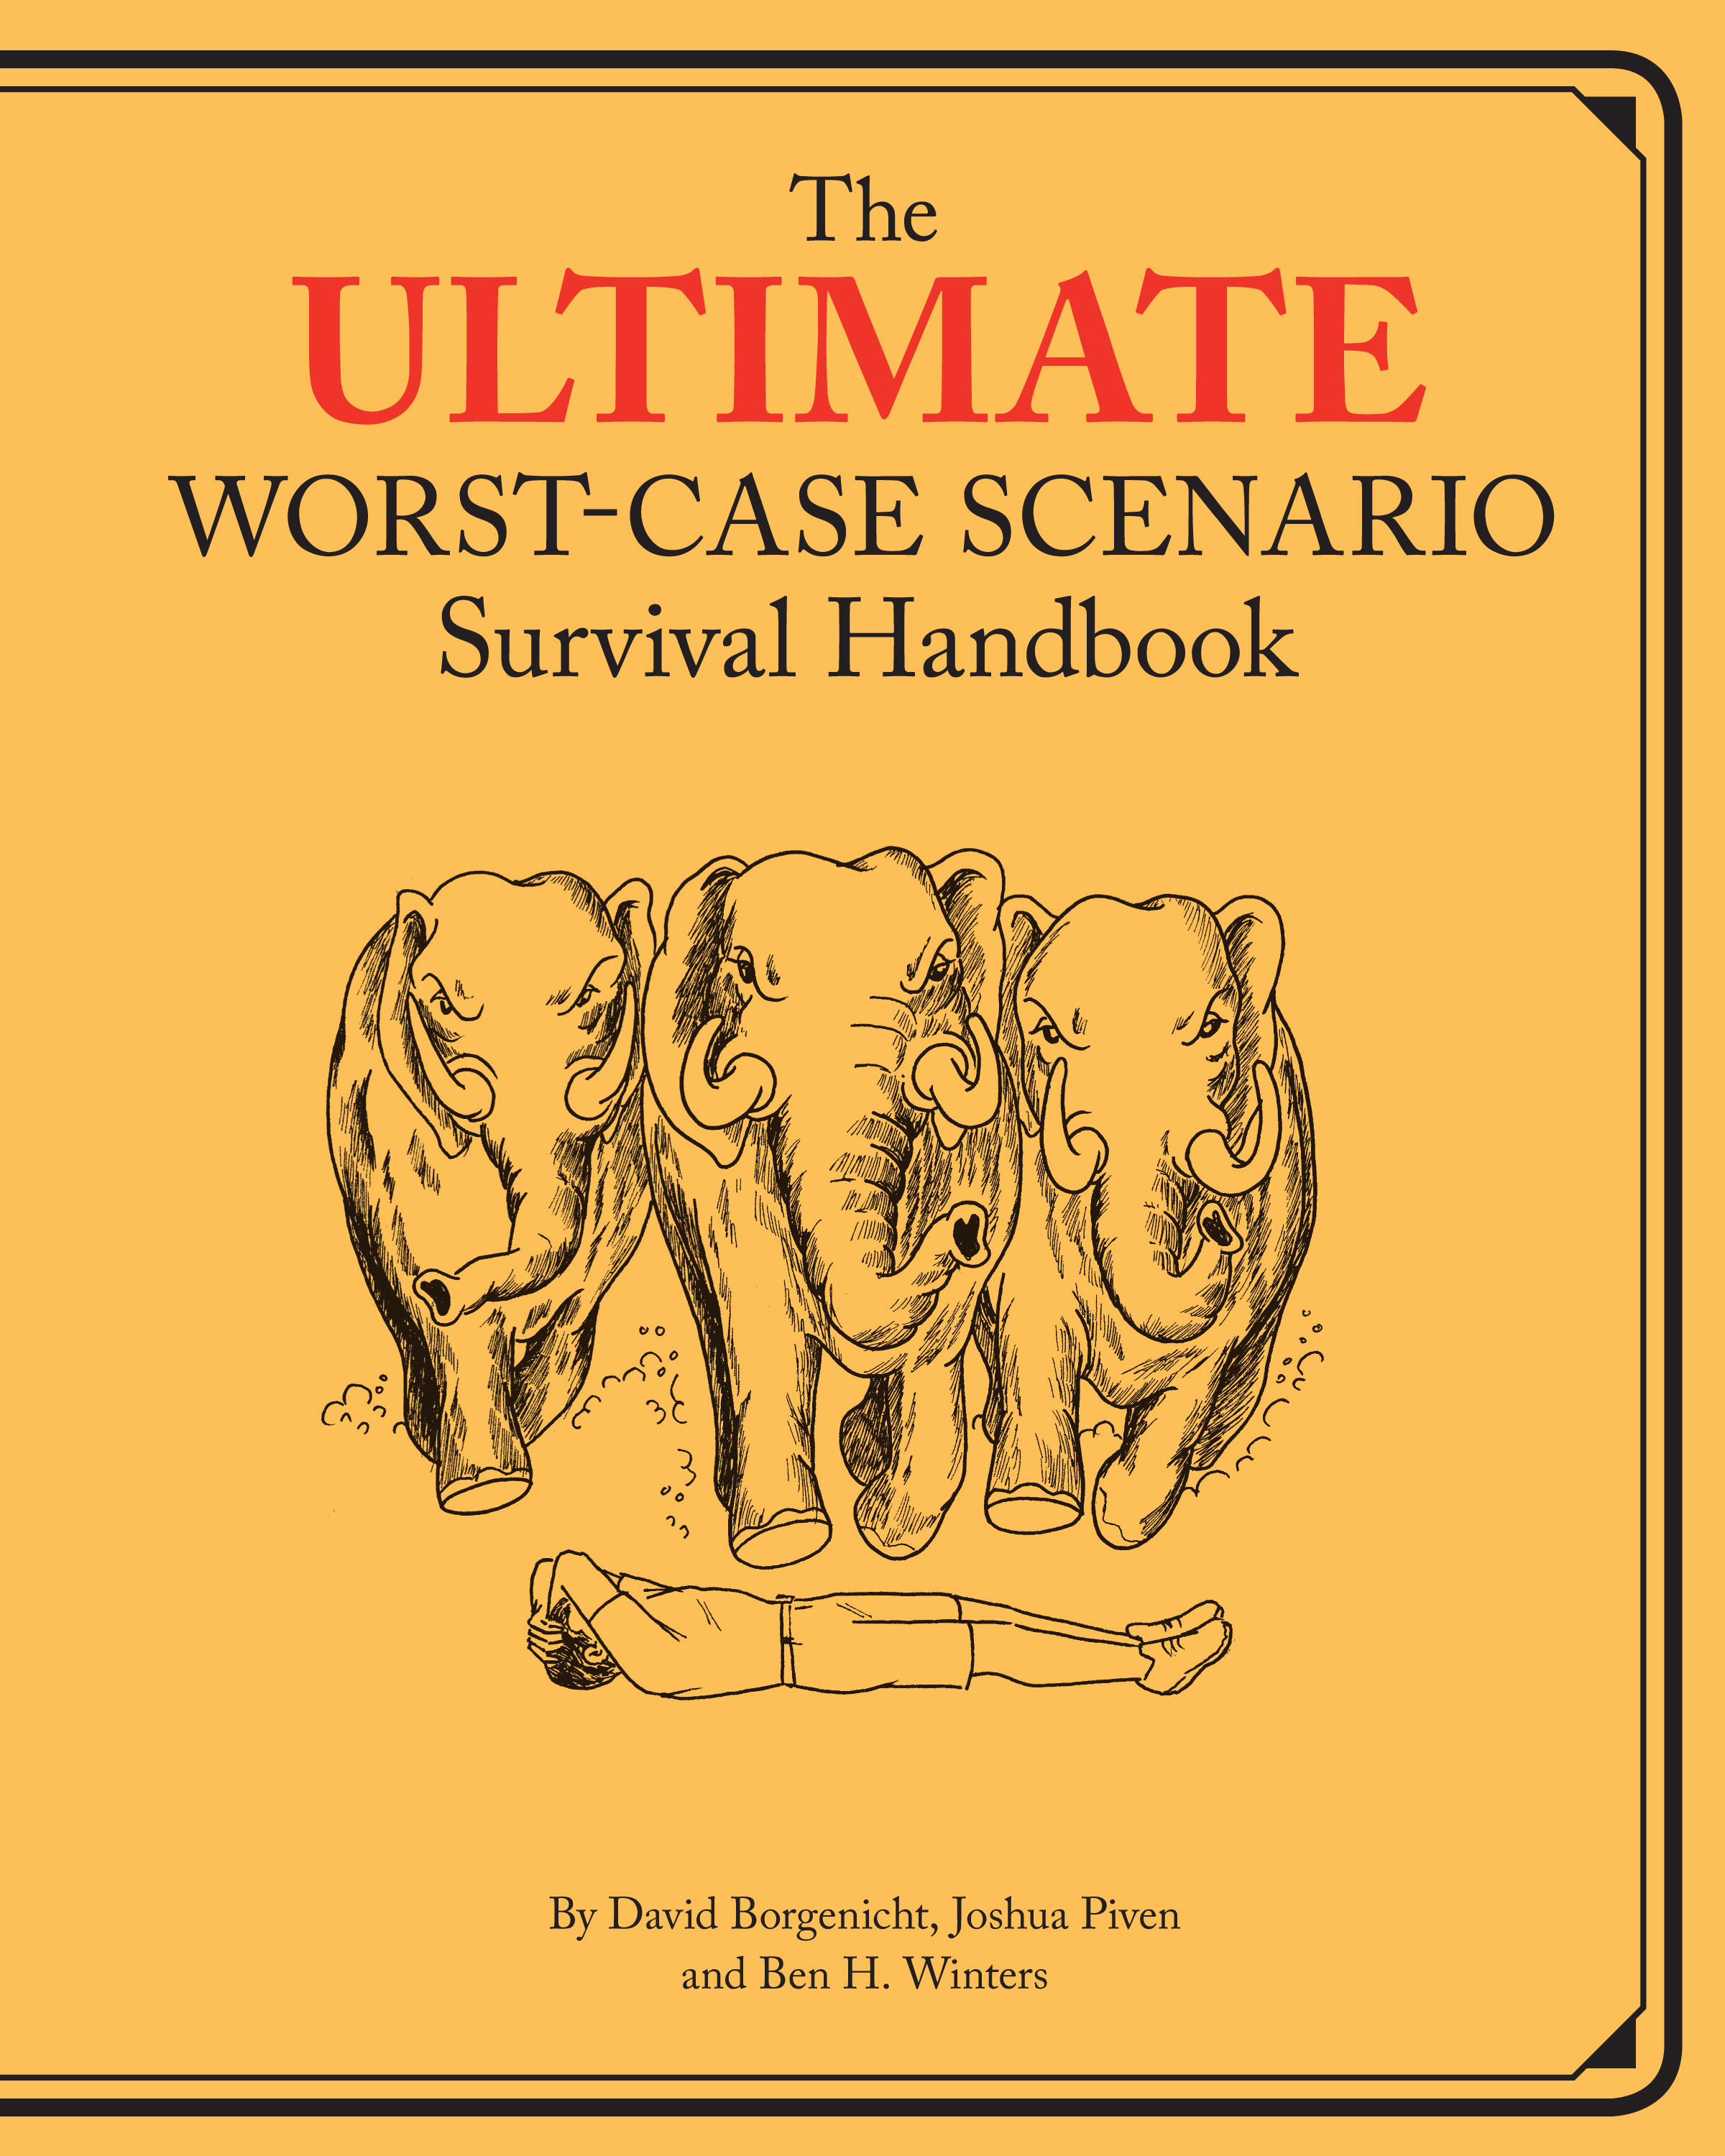 Ultimate Worst-Case Scenario Survival Handbook By: Ben H. Winters,David Borgenicht,Joshua Piven